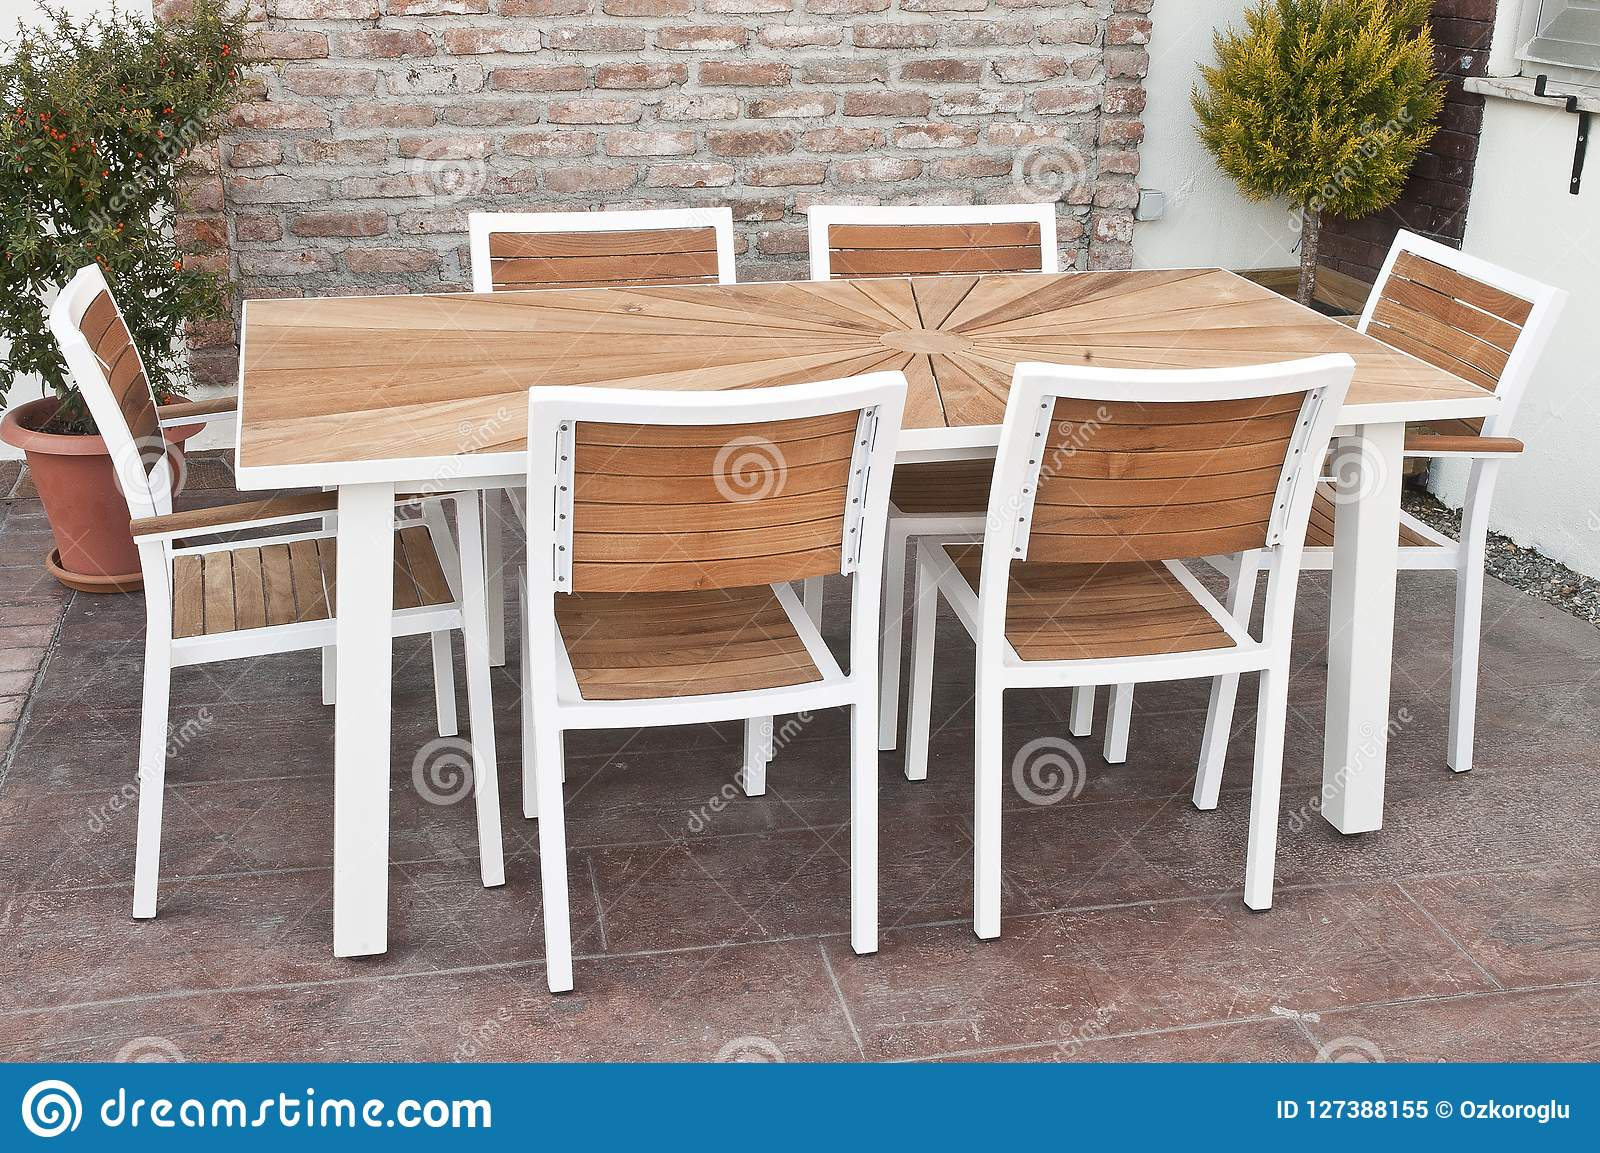 https www dreamstime com metal wood outdoor patio furniture dining table white chairs image127388155